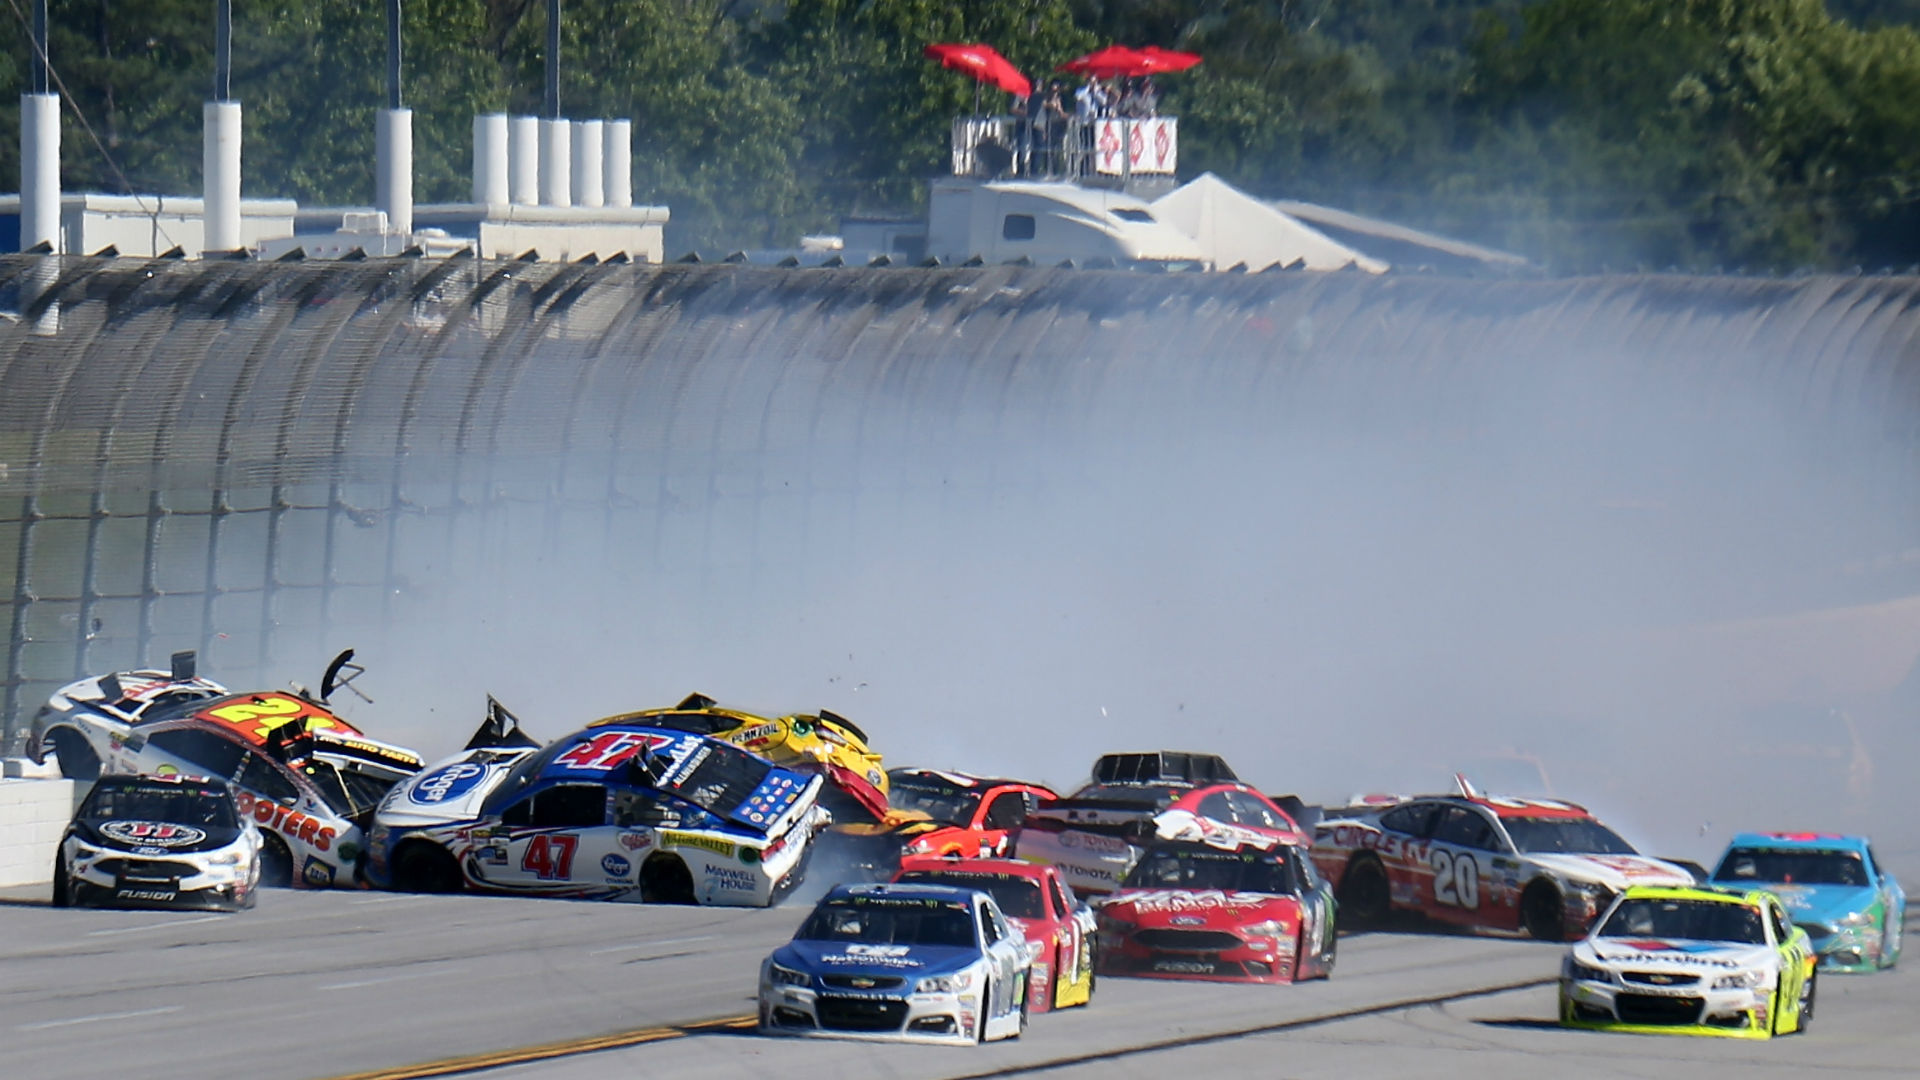 AJ Allmendinger's auto flips over in Talladega crash